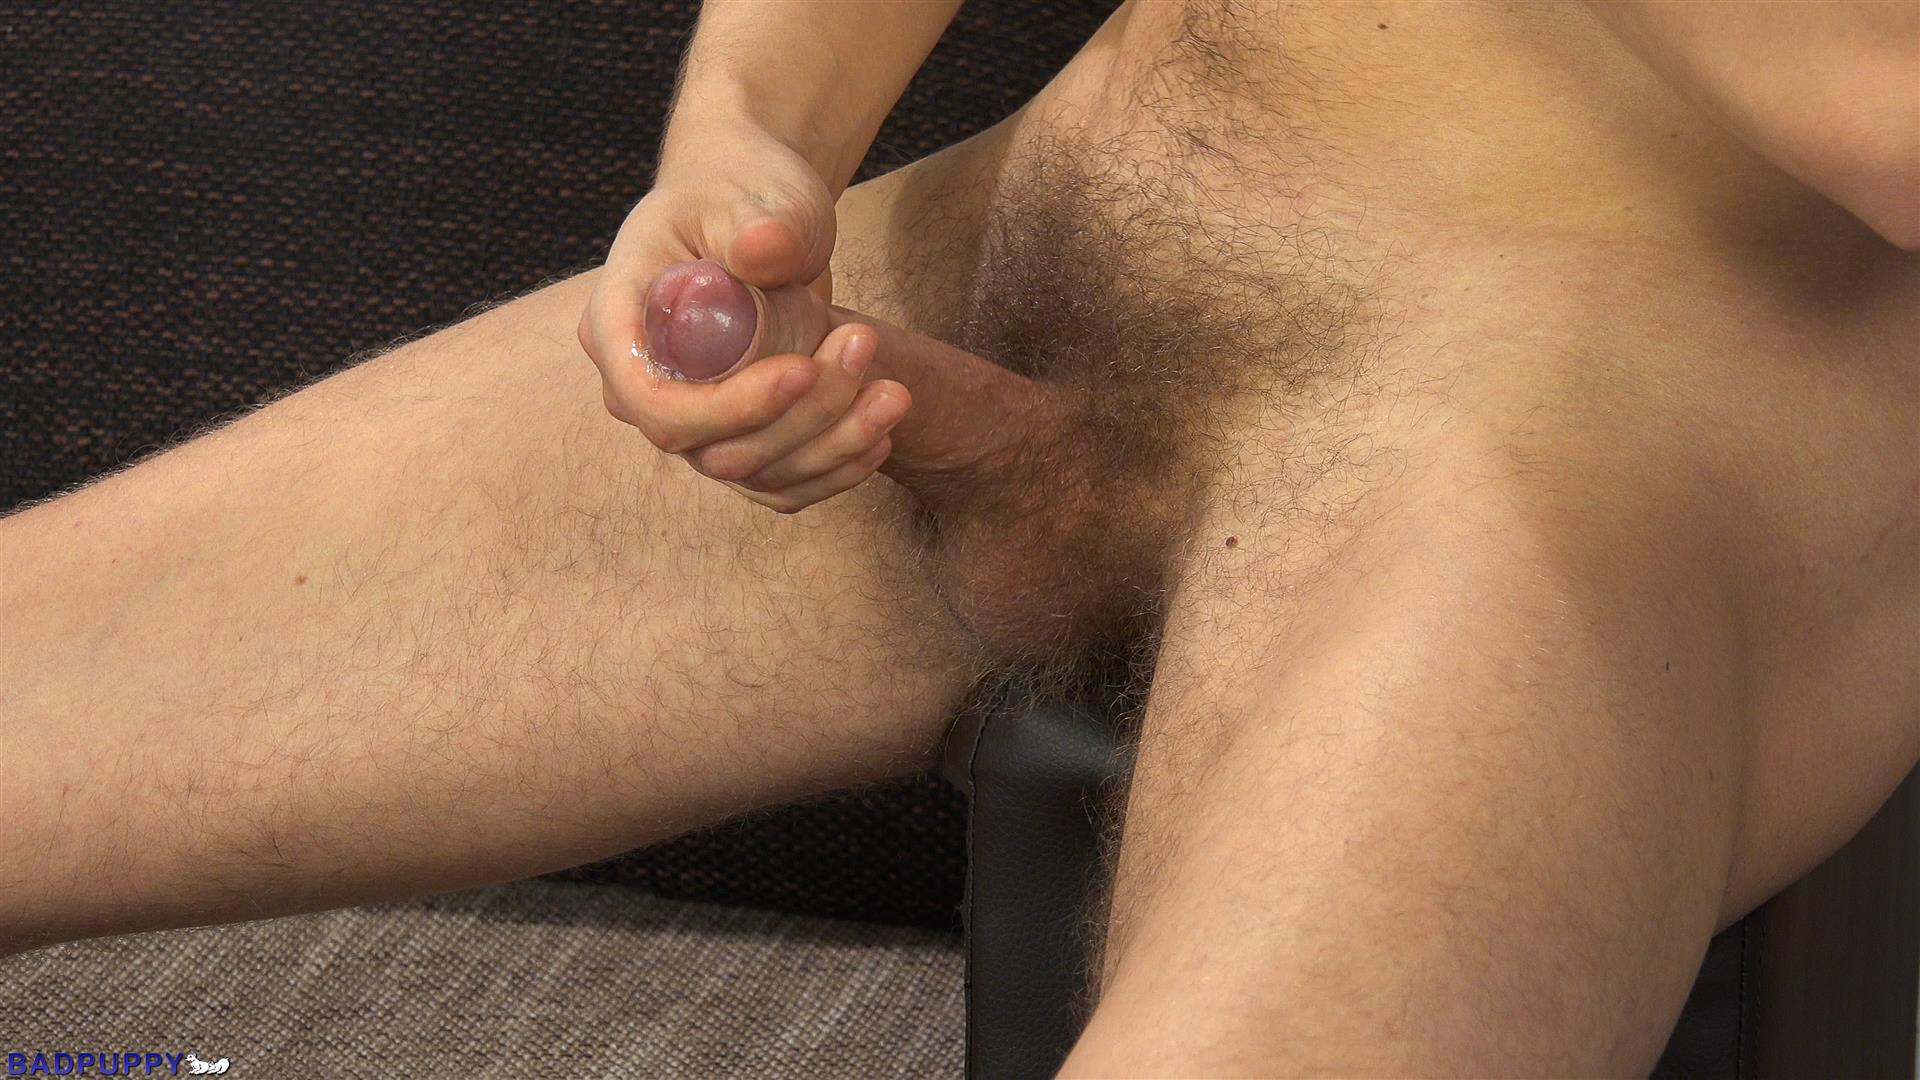 Oleg-Moloda-Badpuppy-Straight-Czech-Jock-With-Big-Uncut-Cock-Amateur-Gay-Porn-18 Straight Czech Muscle Jock Auditions For Gay Porn